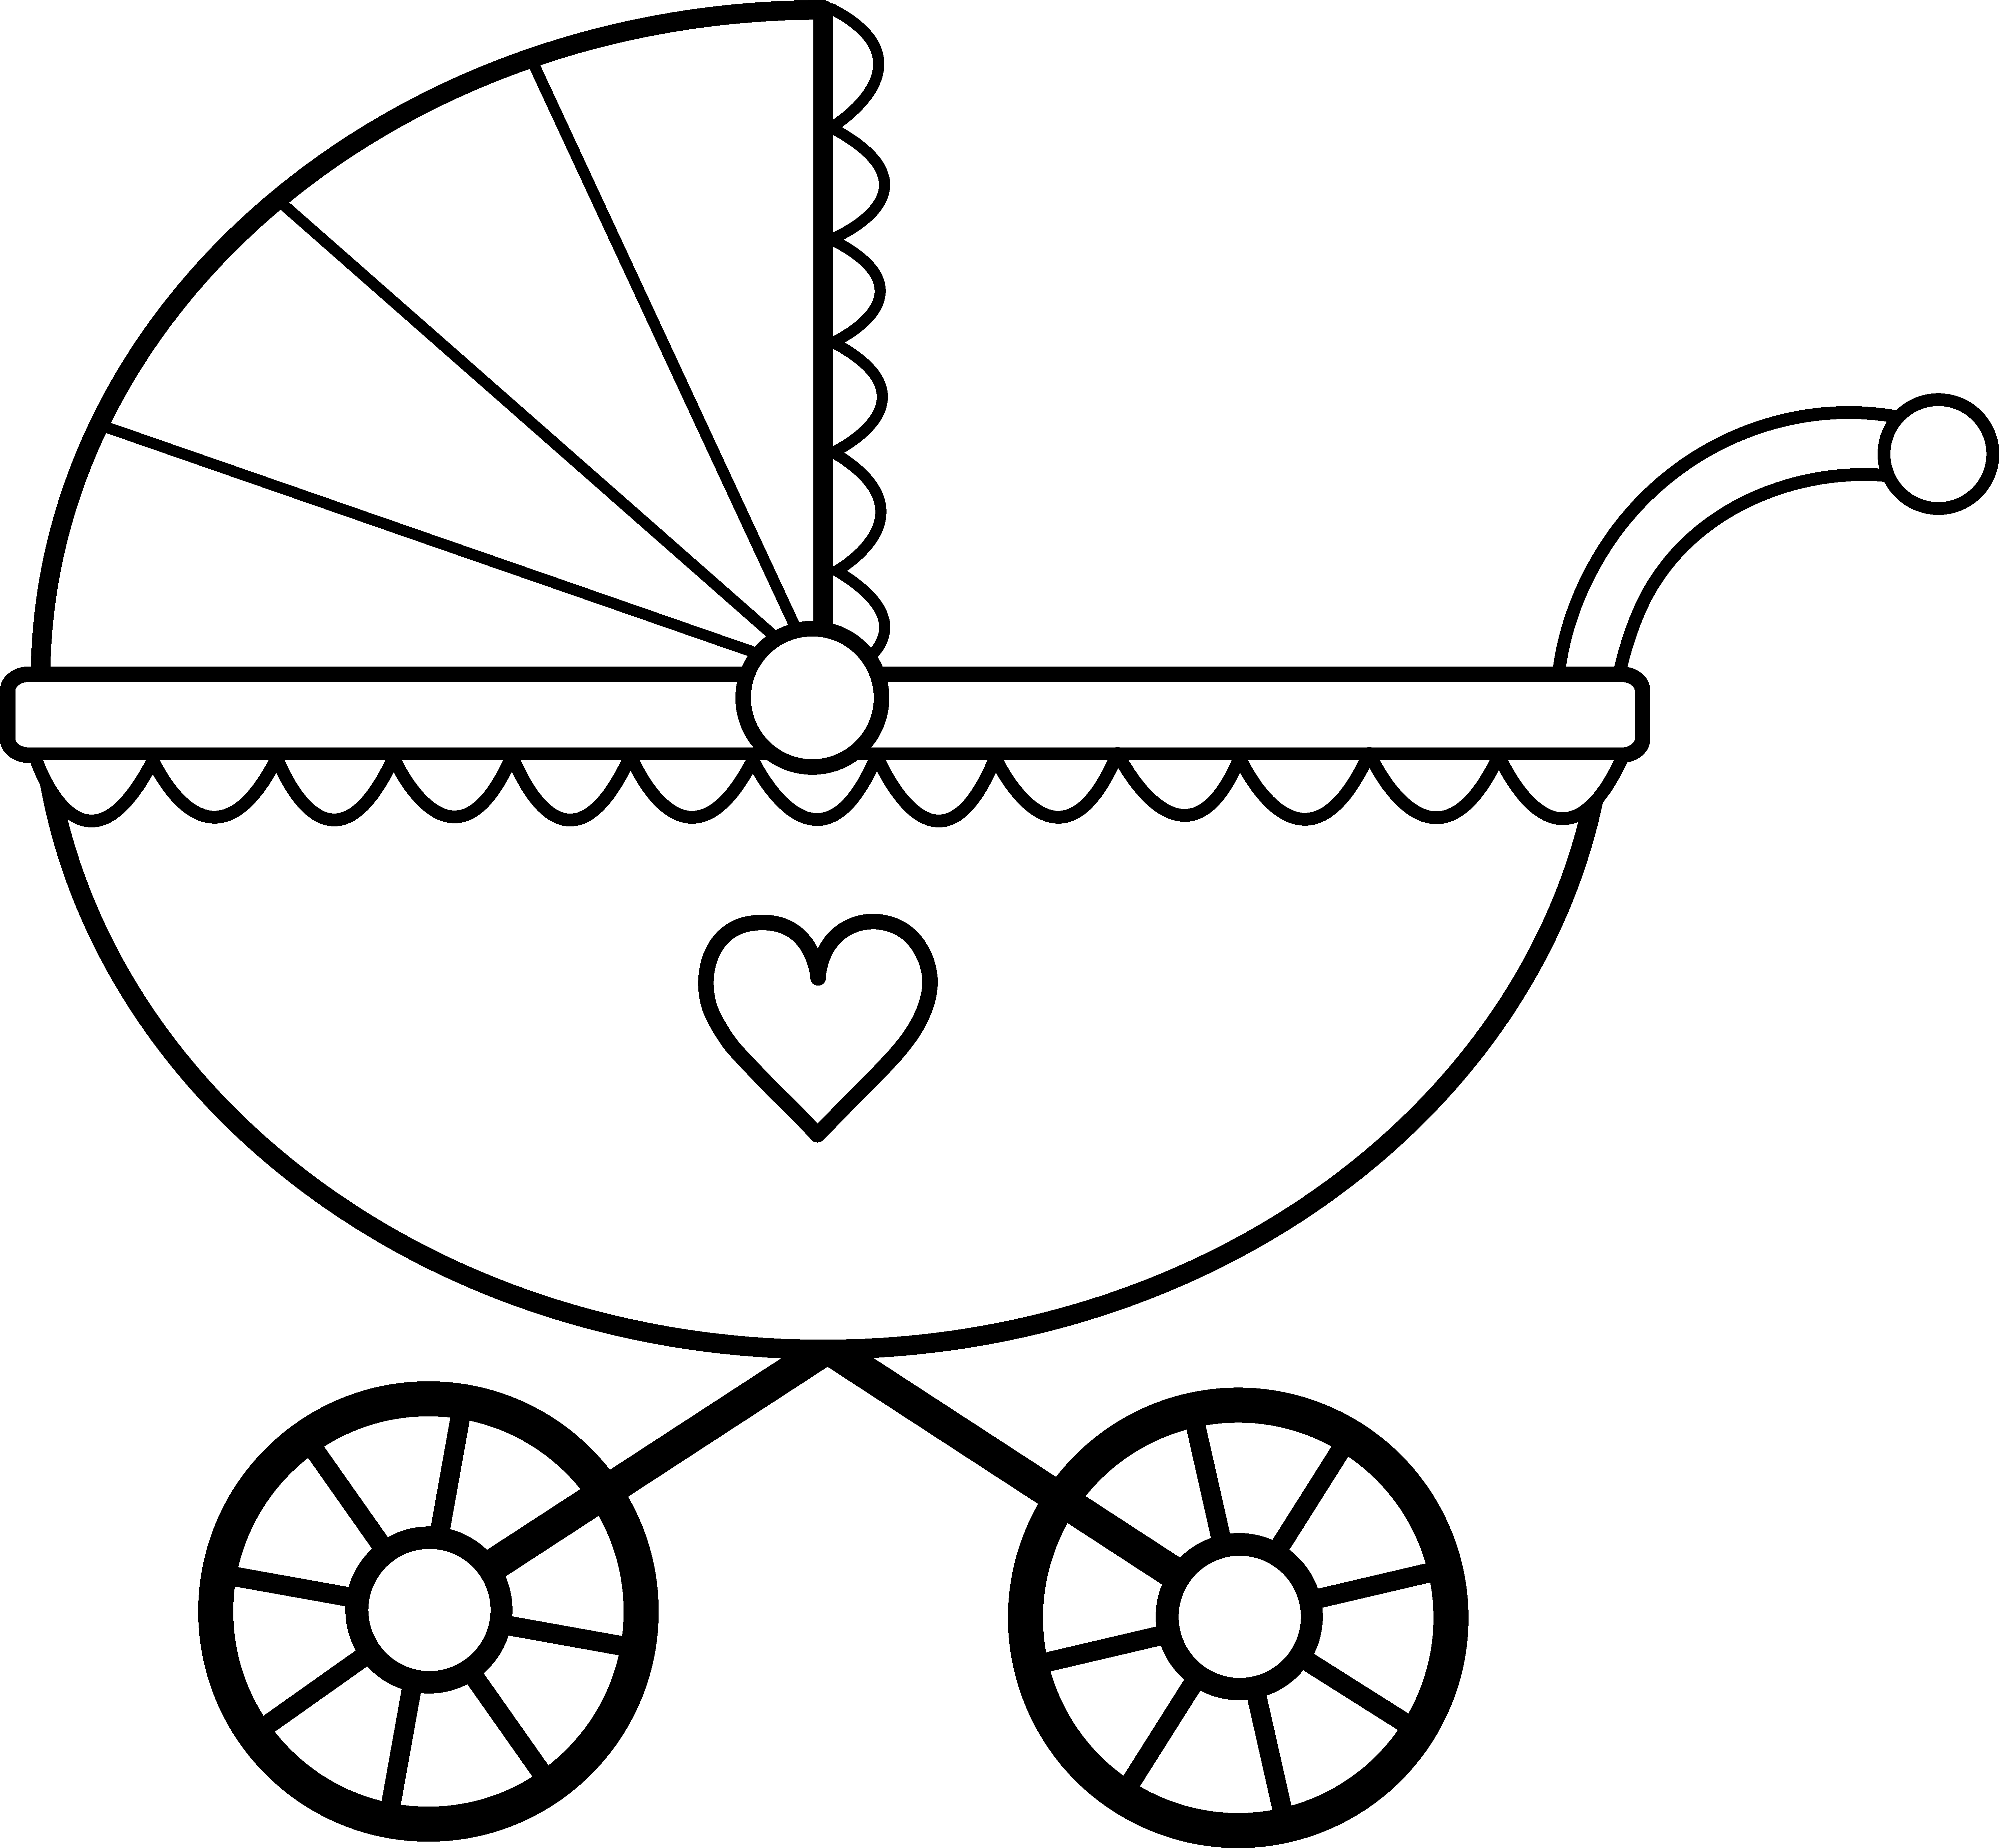 Baby Clipart Black and White #28183